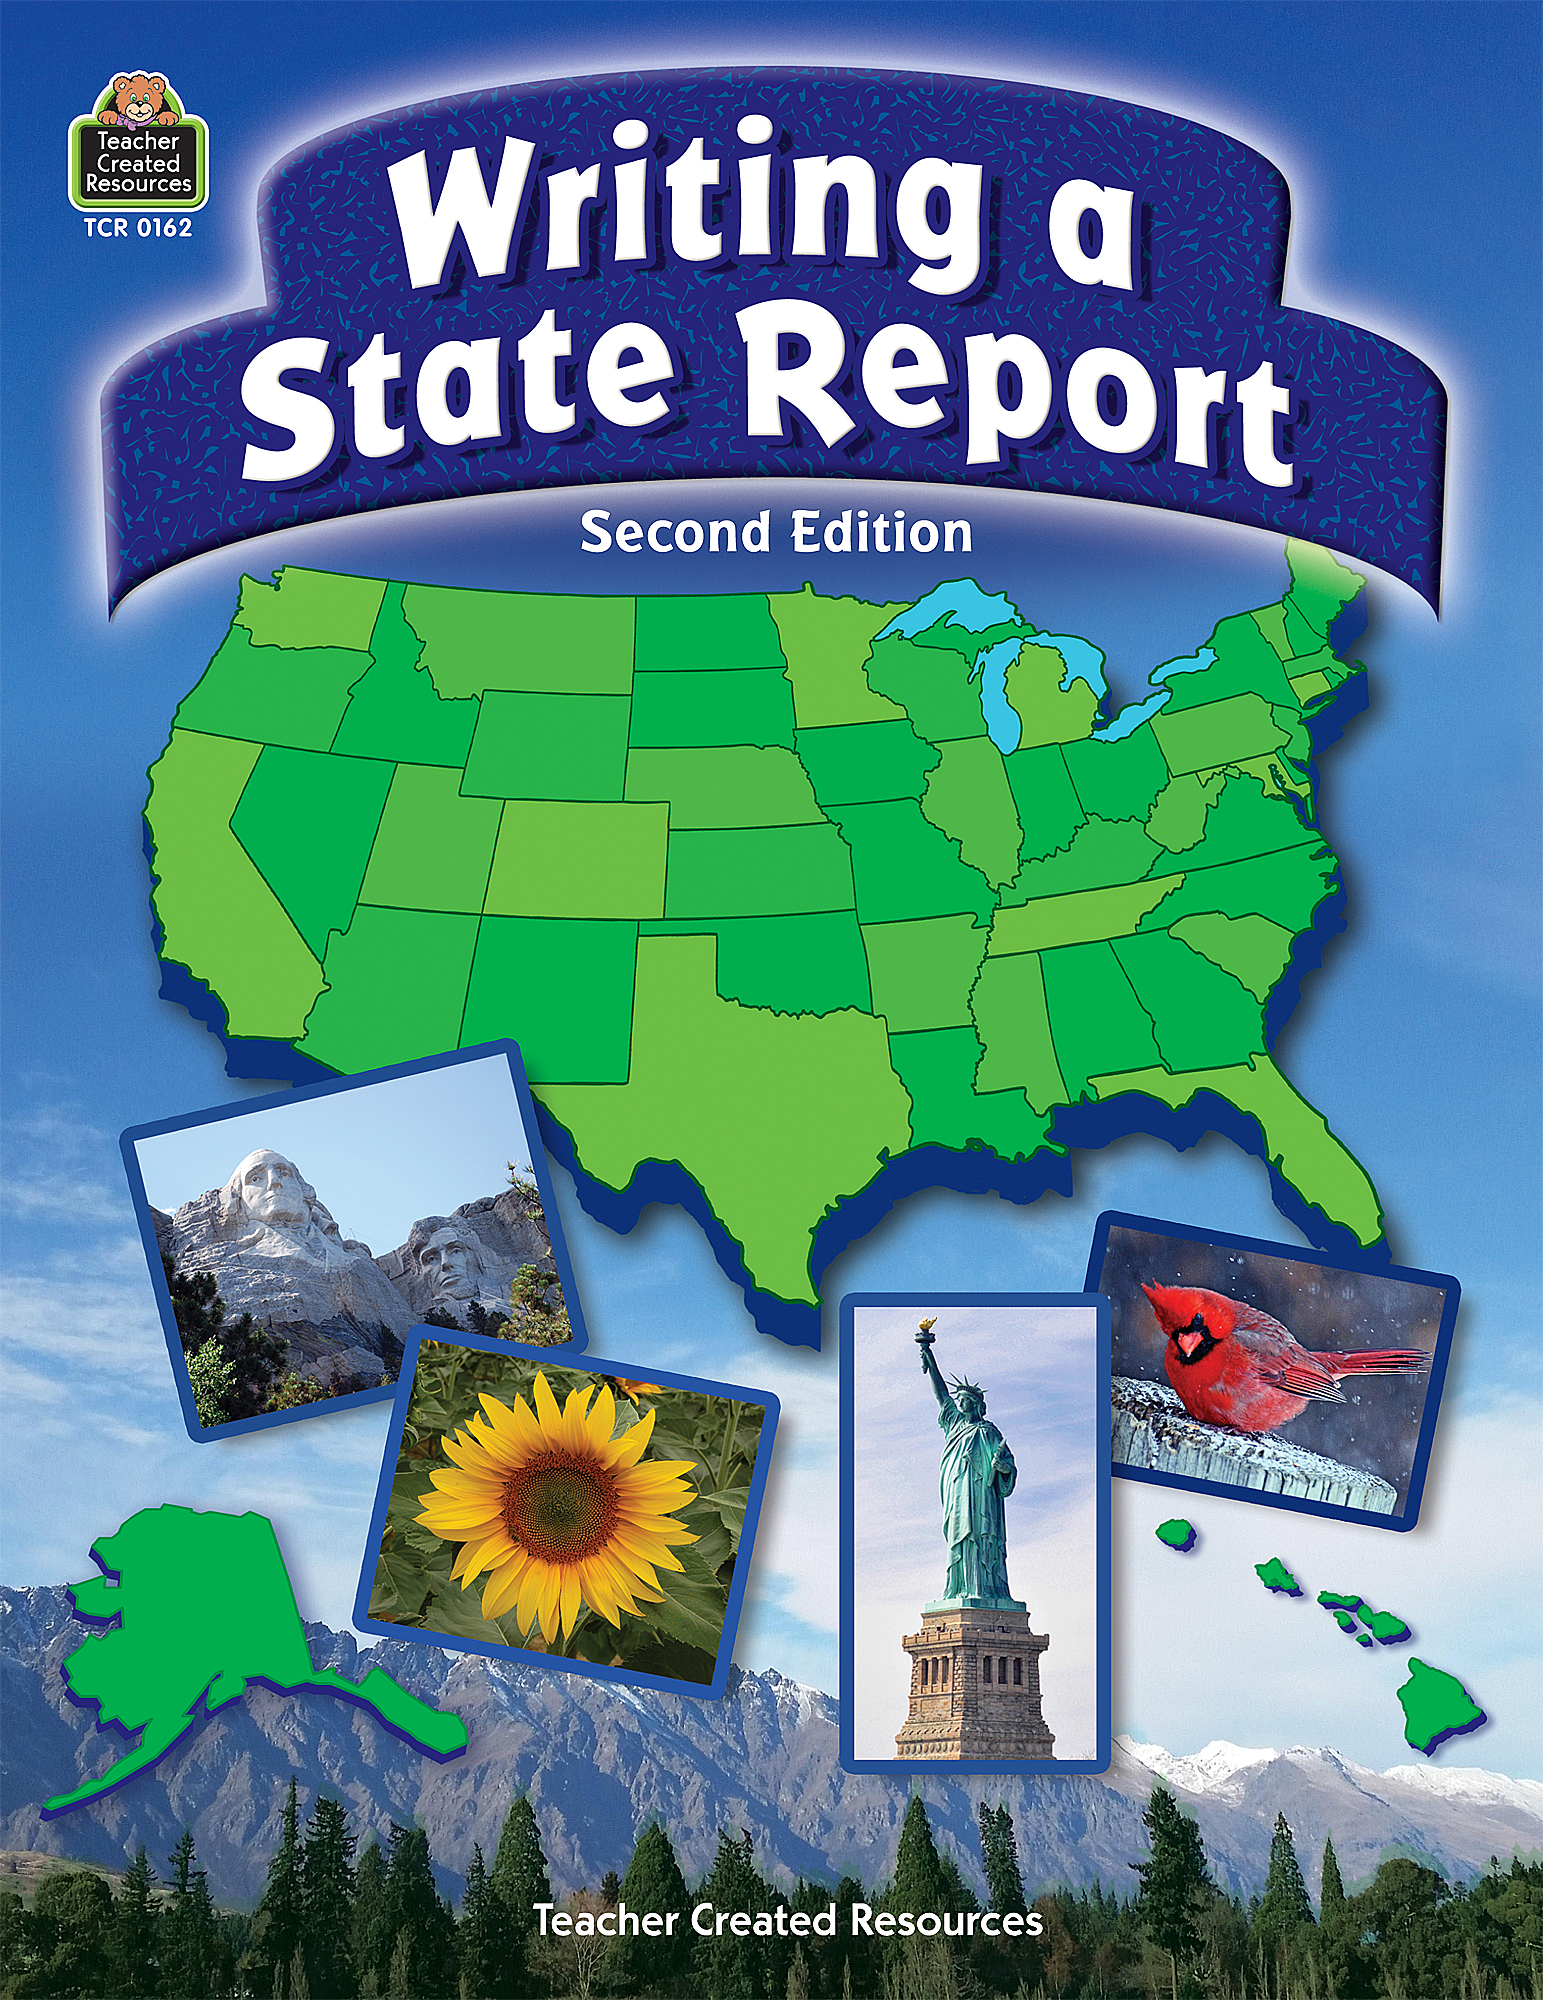 writing a state report book Buy a cheap copy of writing a state report book by john carratello includes materials to aid students in the research phase of report writing, such as library orientation, construction of bibliography materials, footnotes, notecards, and the use of reference materials.